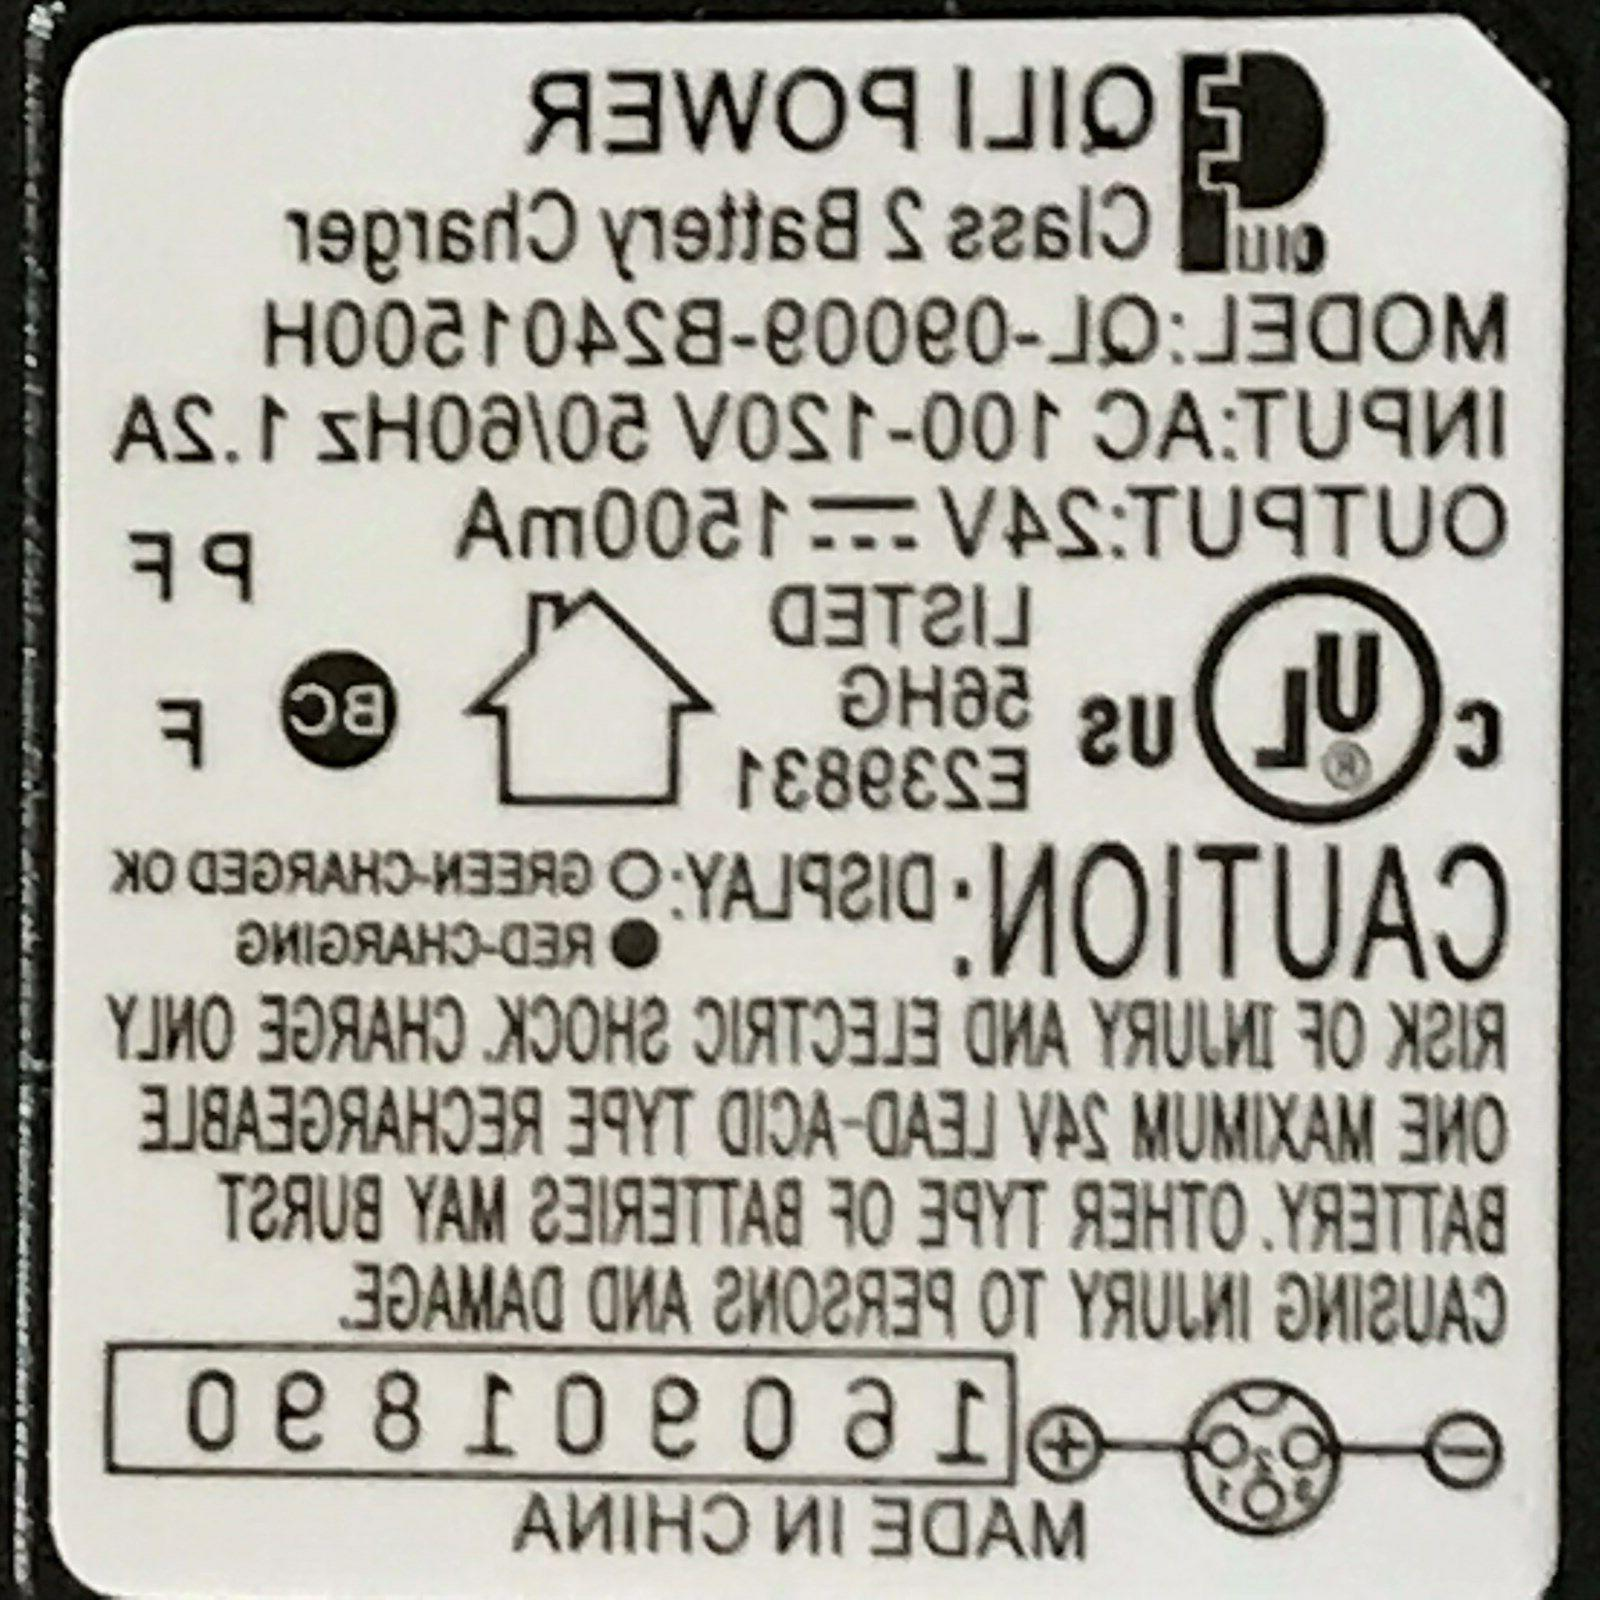 Razor 24 Volt - 1500mA for products